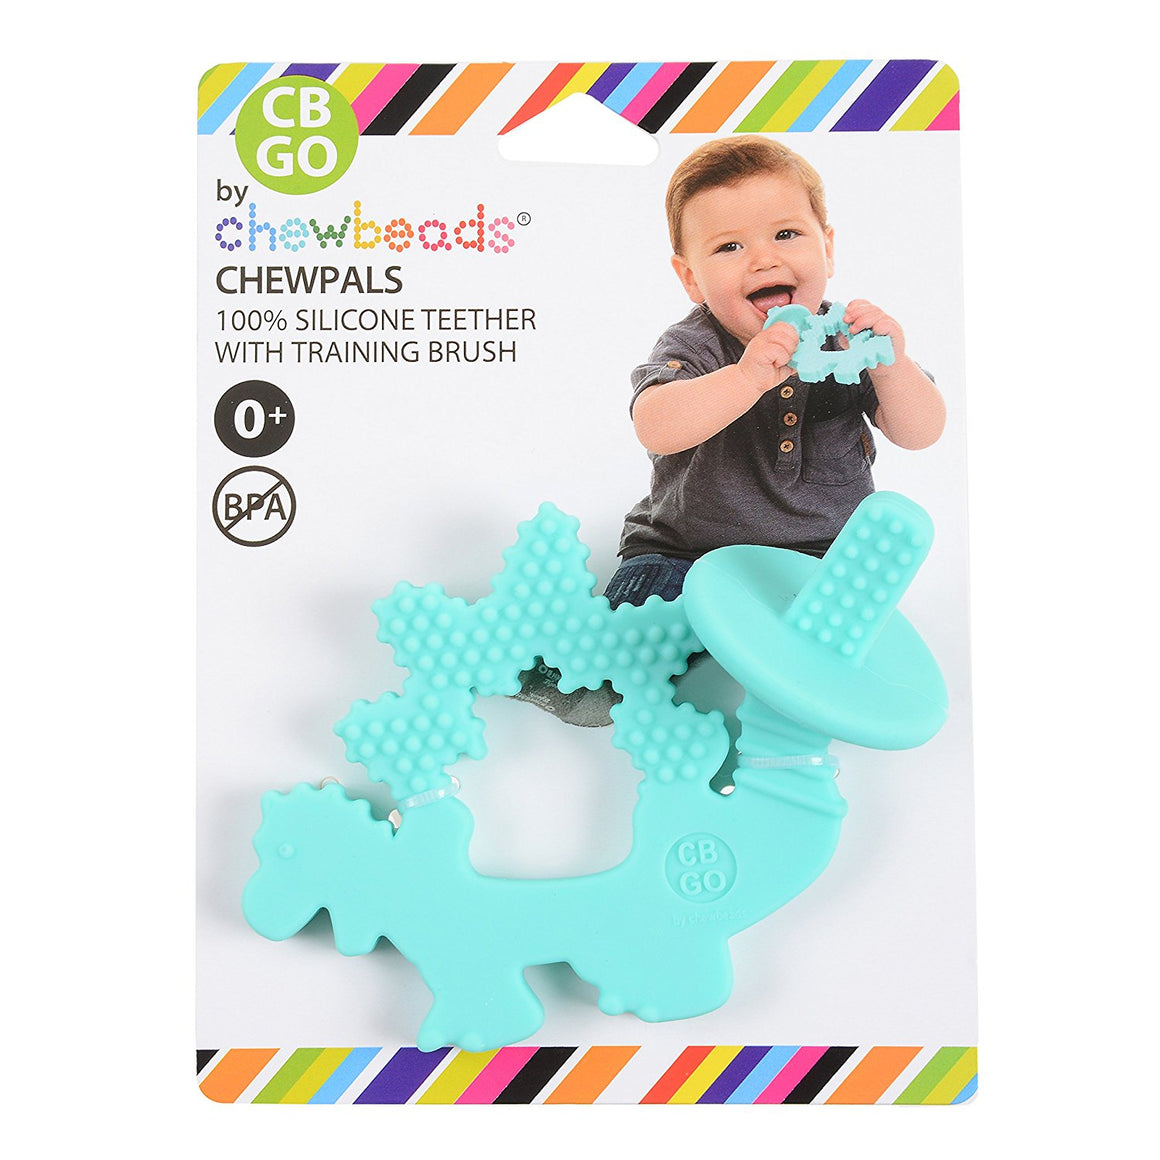 Chewbeads Chewpal Dinosaur Silicone teether is light blue